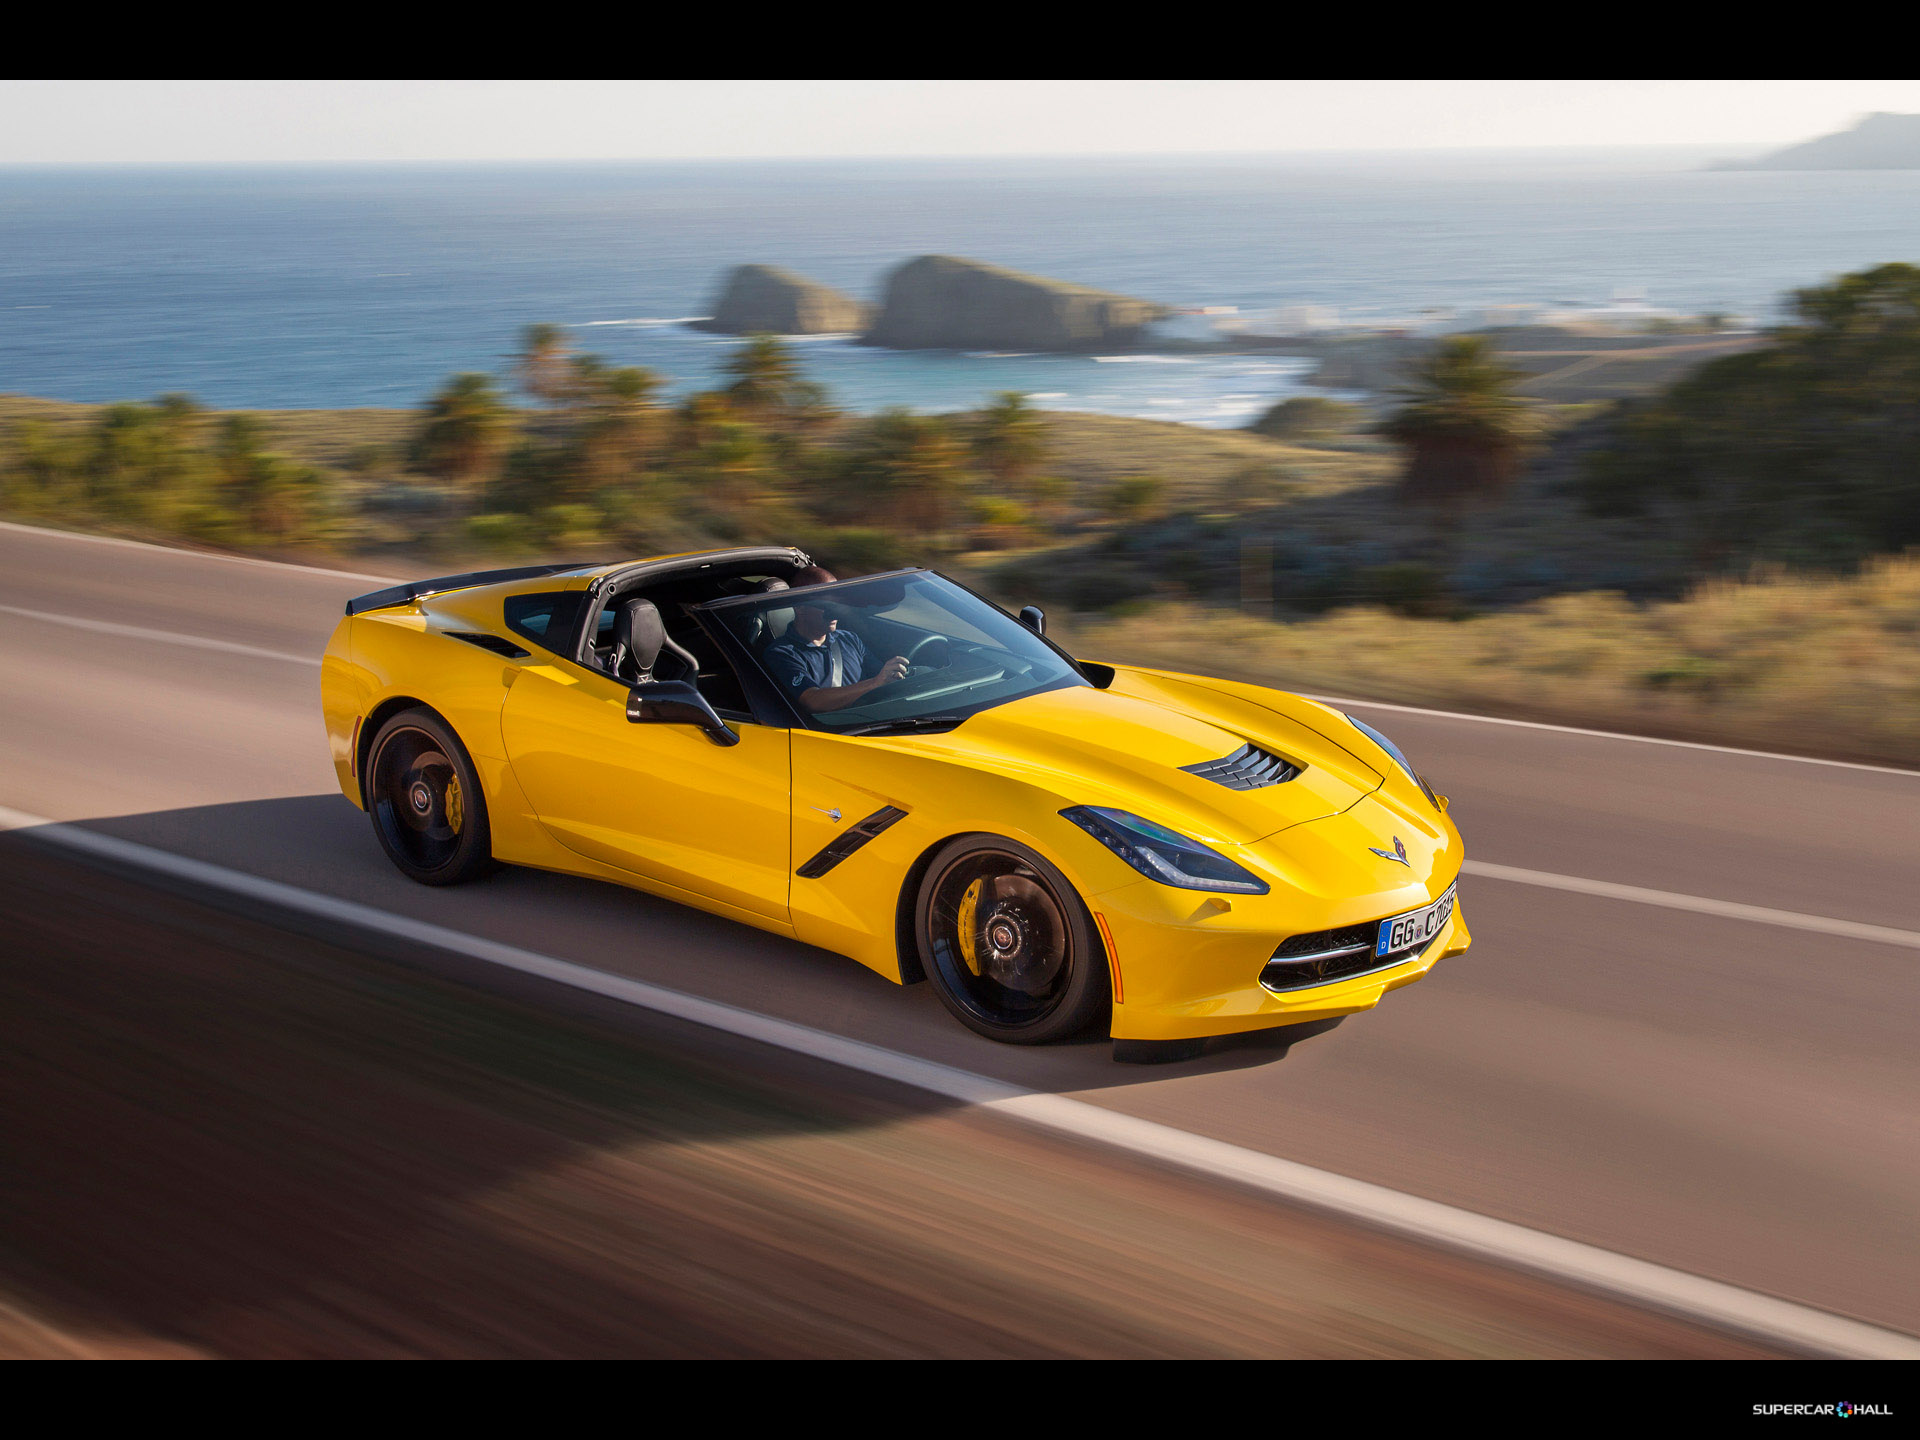 2019 Chevrolet Corvette Stingray EU Version photo - 4